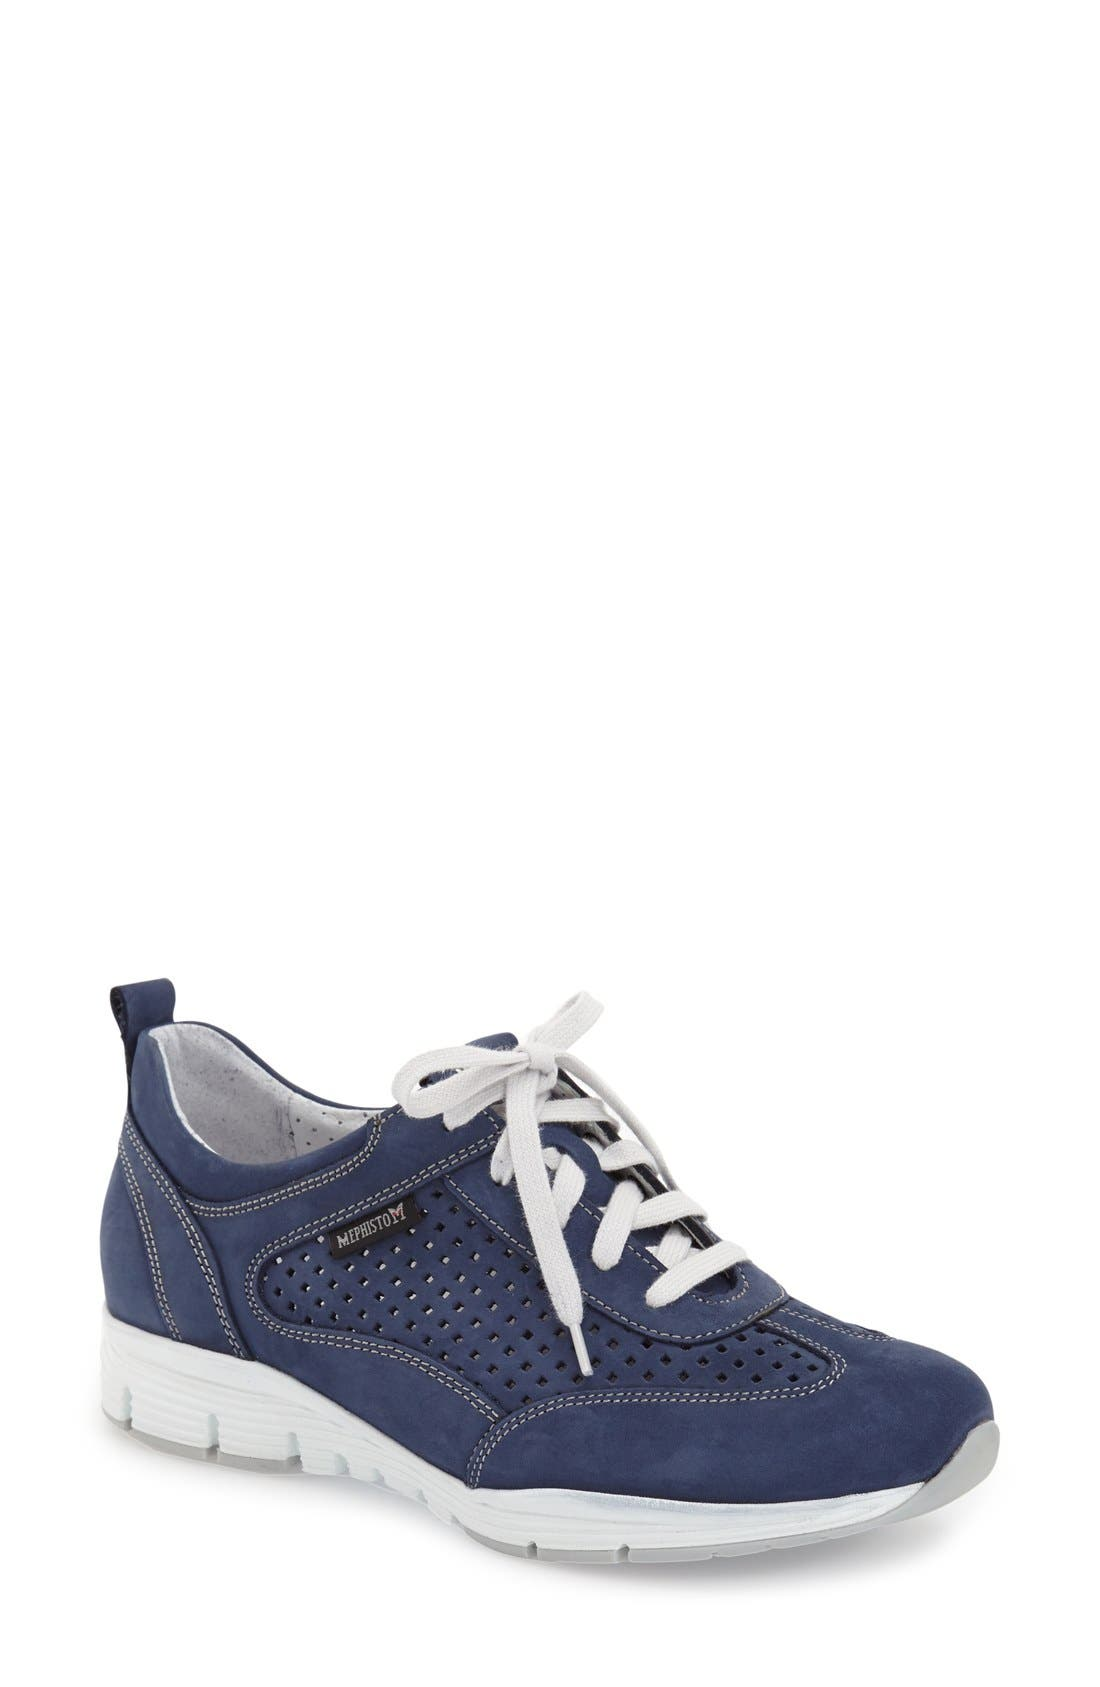 Main Image - Mephisto 'Yoana' Soft Air Perforated Sneaker (Women)